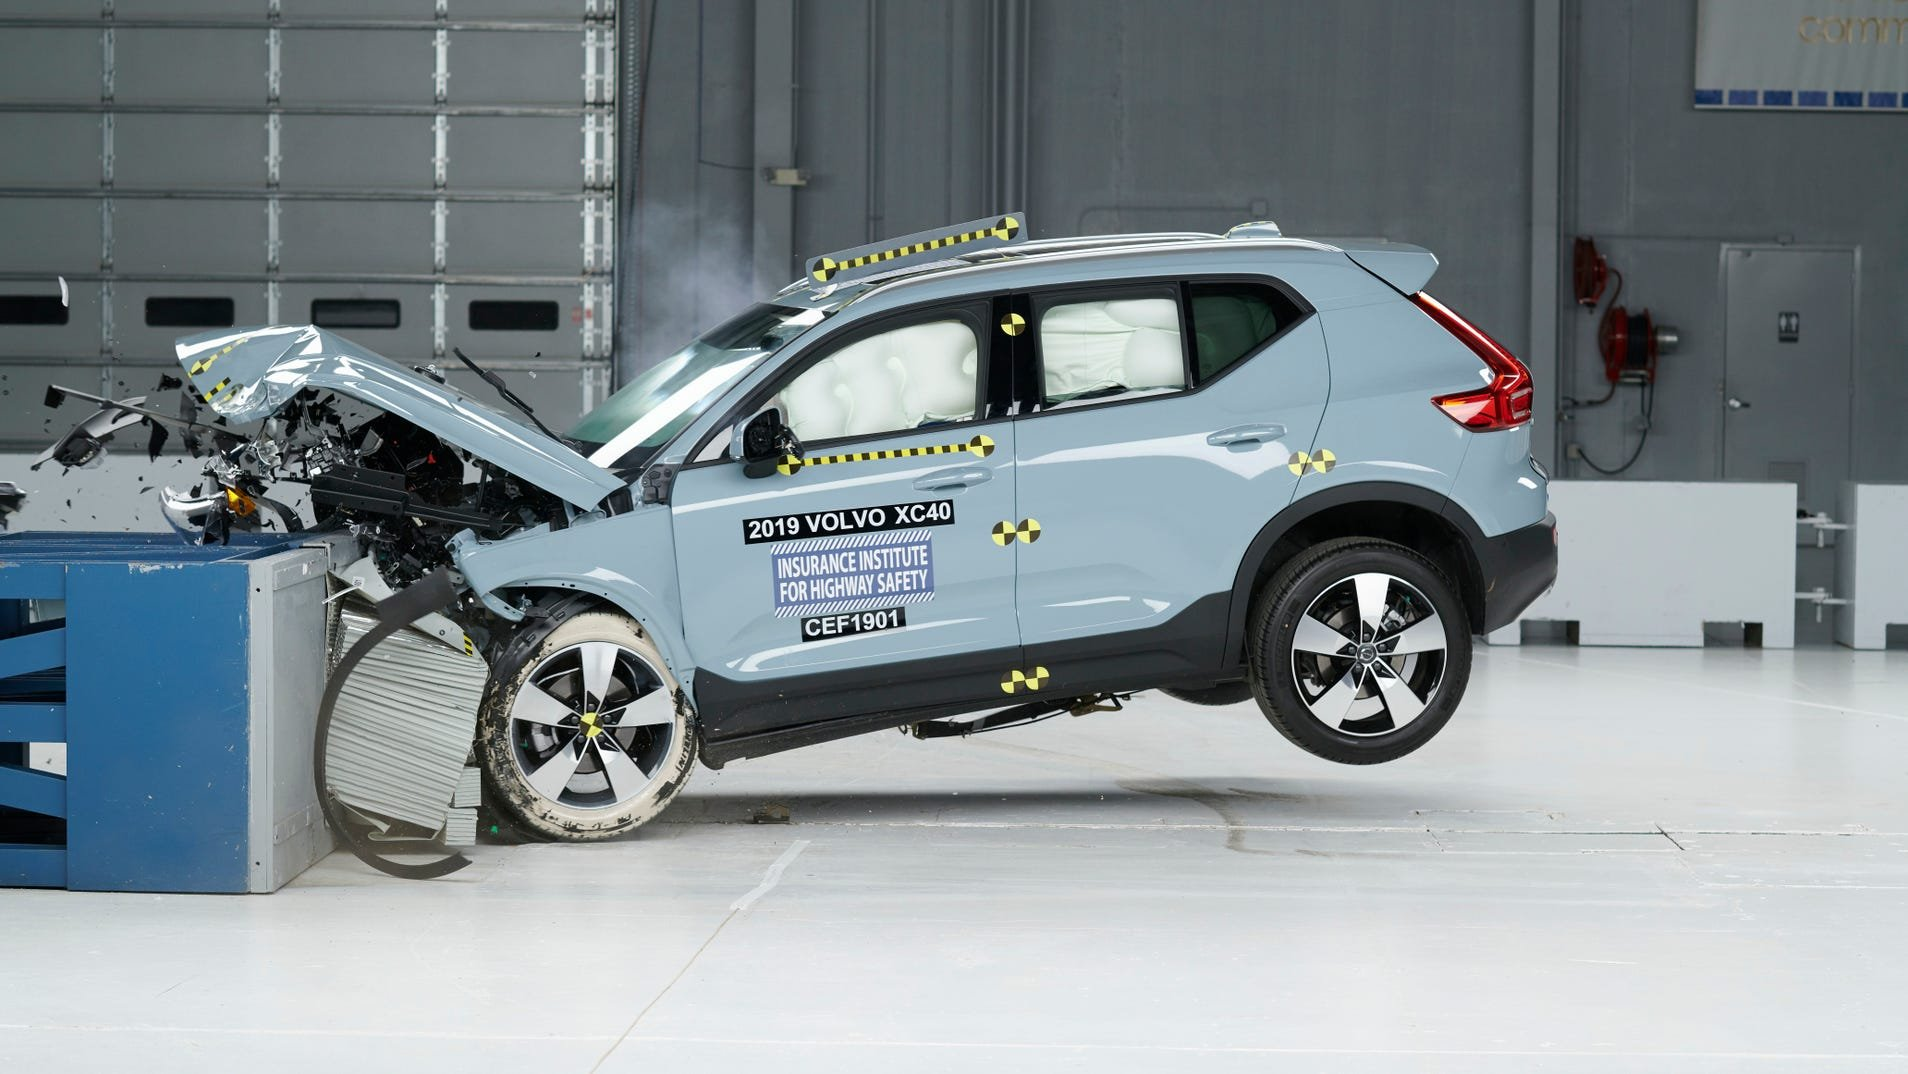 """The 2019 Volvo XC40 in the moderate overlap frontal test, which the IIHS rated it as """"Good"""" for."""